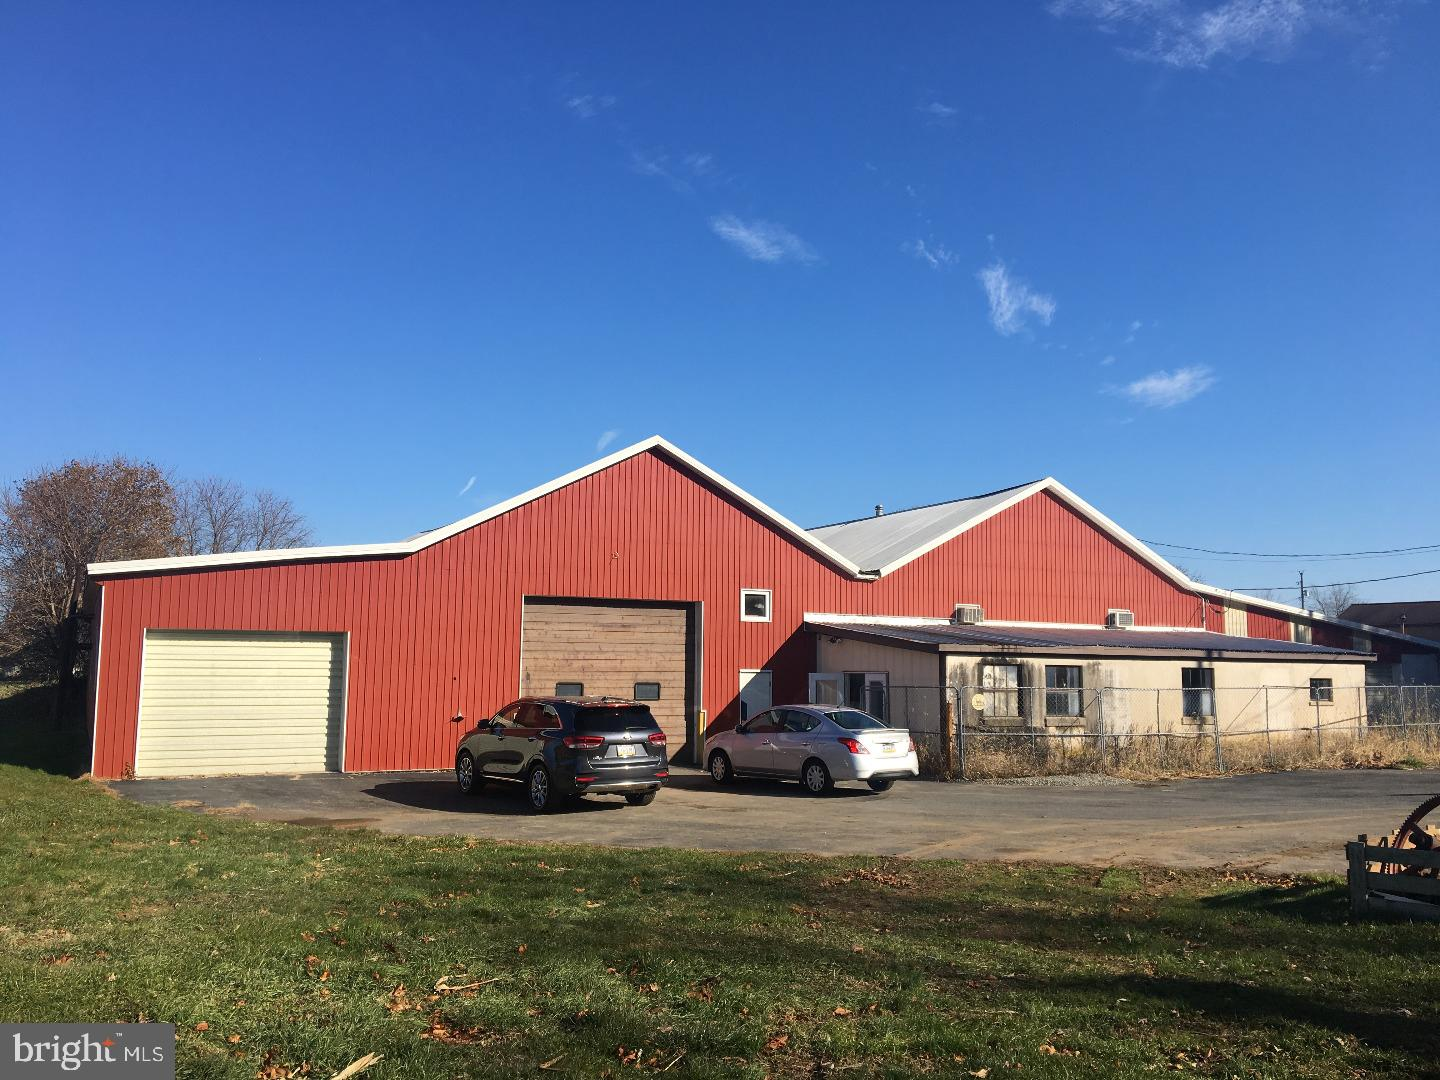 This property is situated on 2.1 acres with a 9,649 SF building with a mechanical car lift. It is an ideal property for storing and working on classic or vintage cars. Building can be divided into two spaces conveniently but possibly 3 spaces. This property must be seen to appreciate the layout of the space.